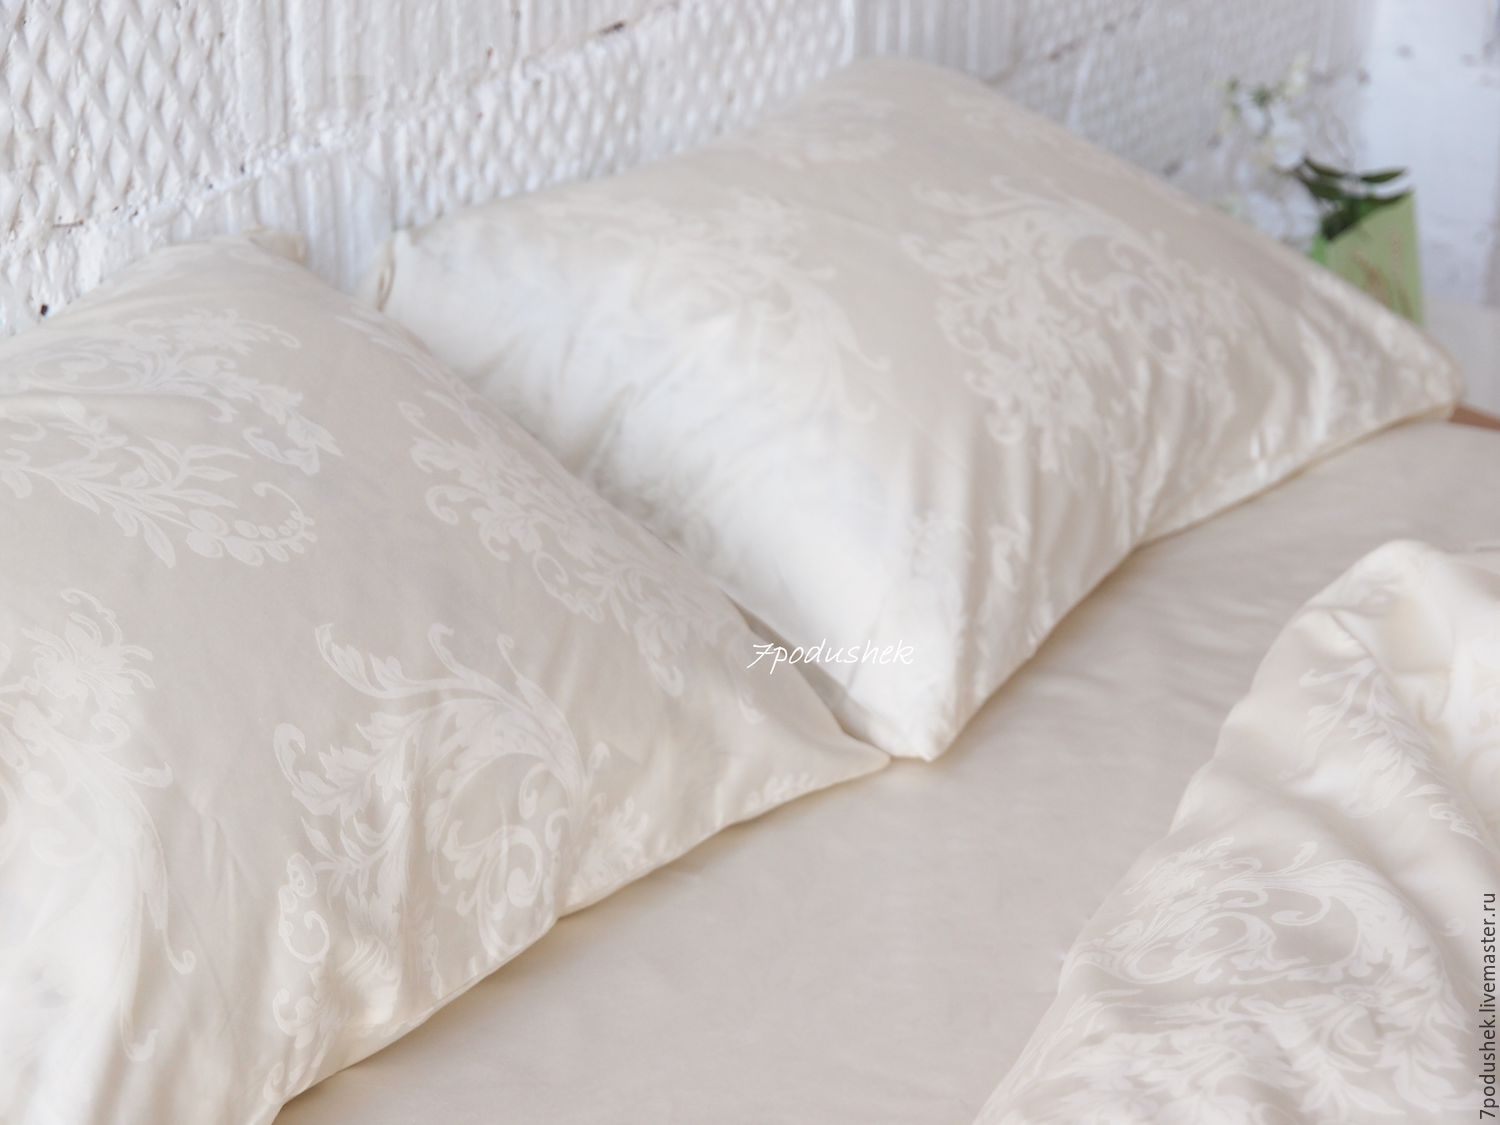 Satin Duvet Cover Ivory Bedding Ivory Linen Duvet Cover Set Cotton Satin Bedding Shop Online On Livemaster With Shipping